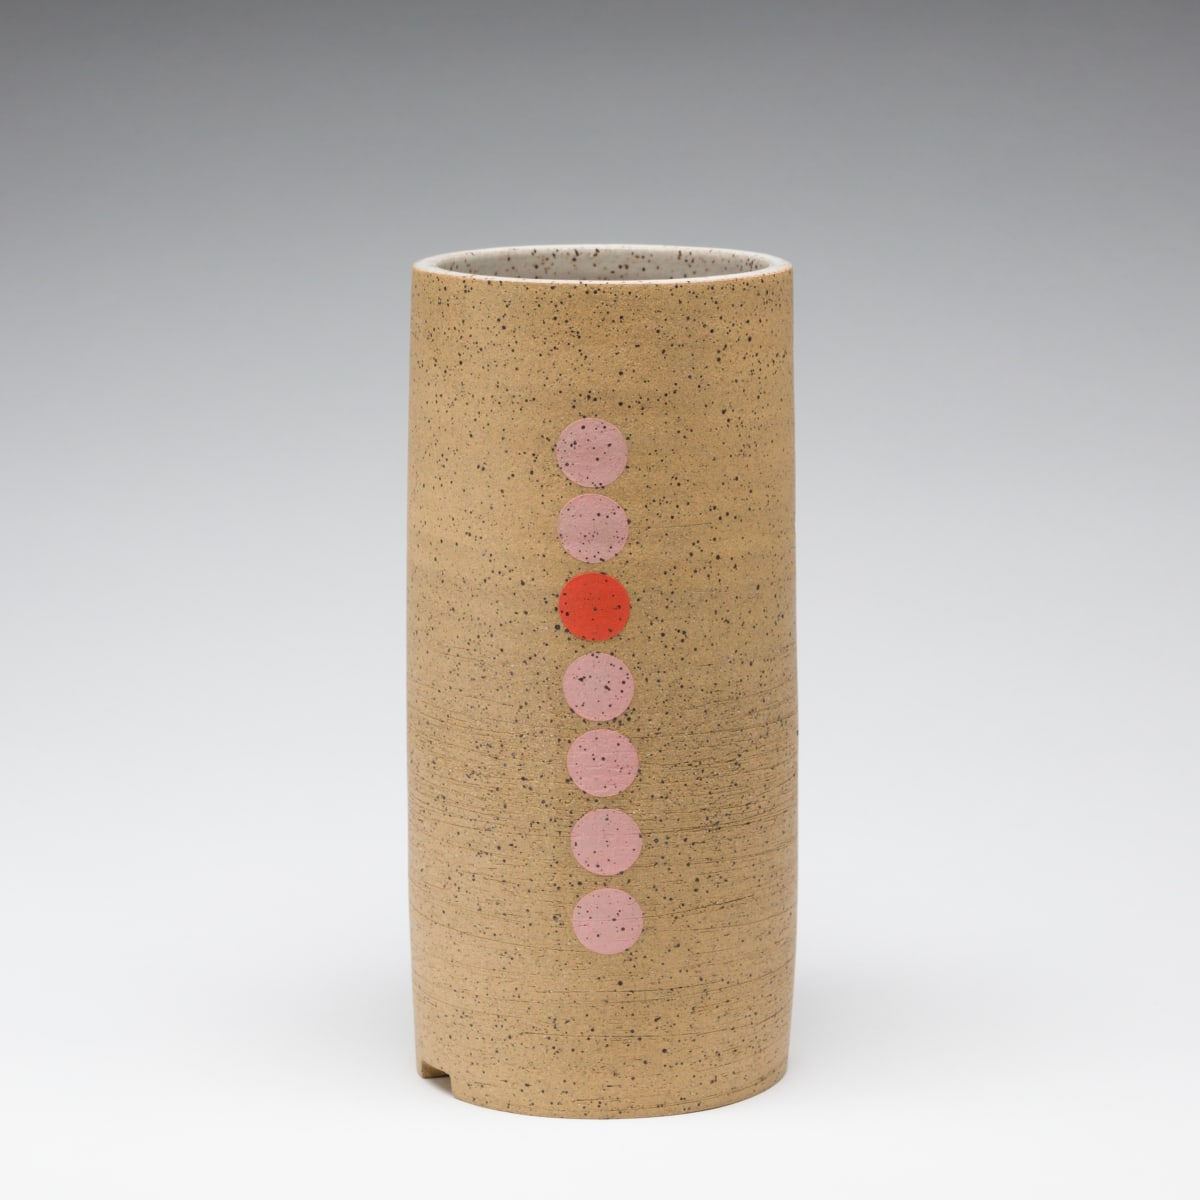 Rachel Donner, Speckled Vase with Pink Circles, 2019